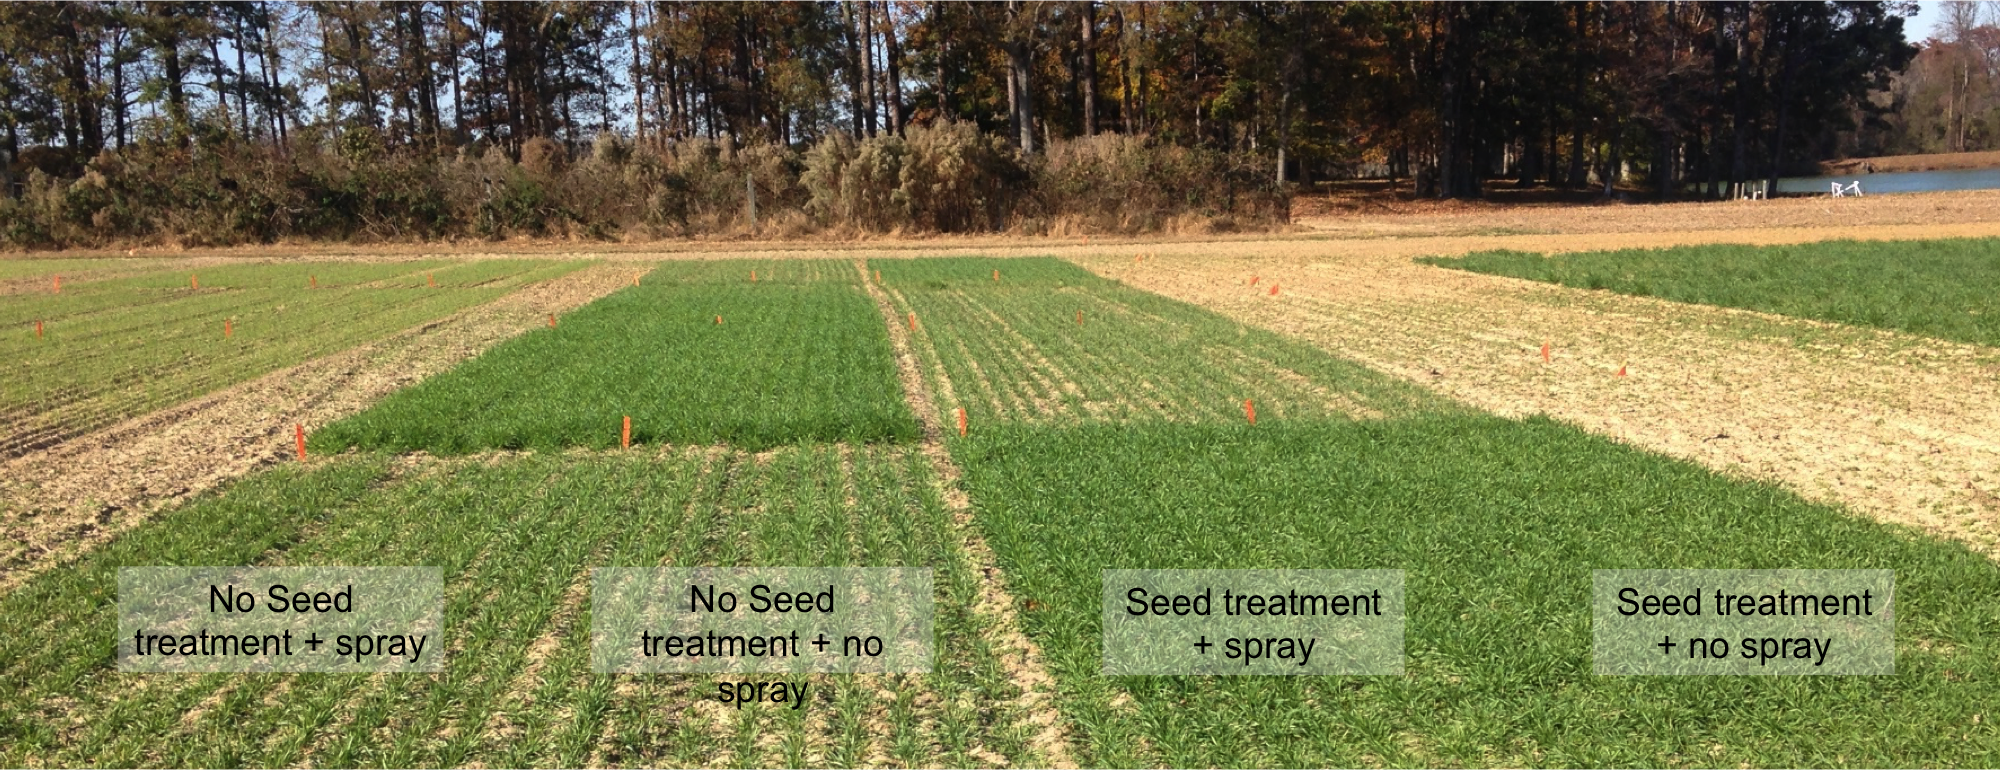 The visual benefit of an insecticide seed treatment for Hessian fly.